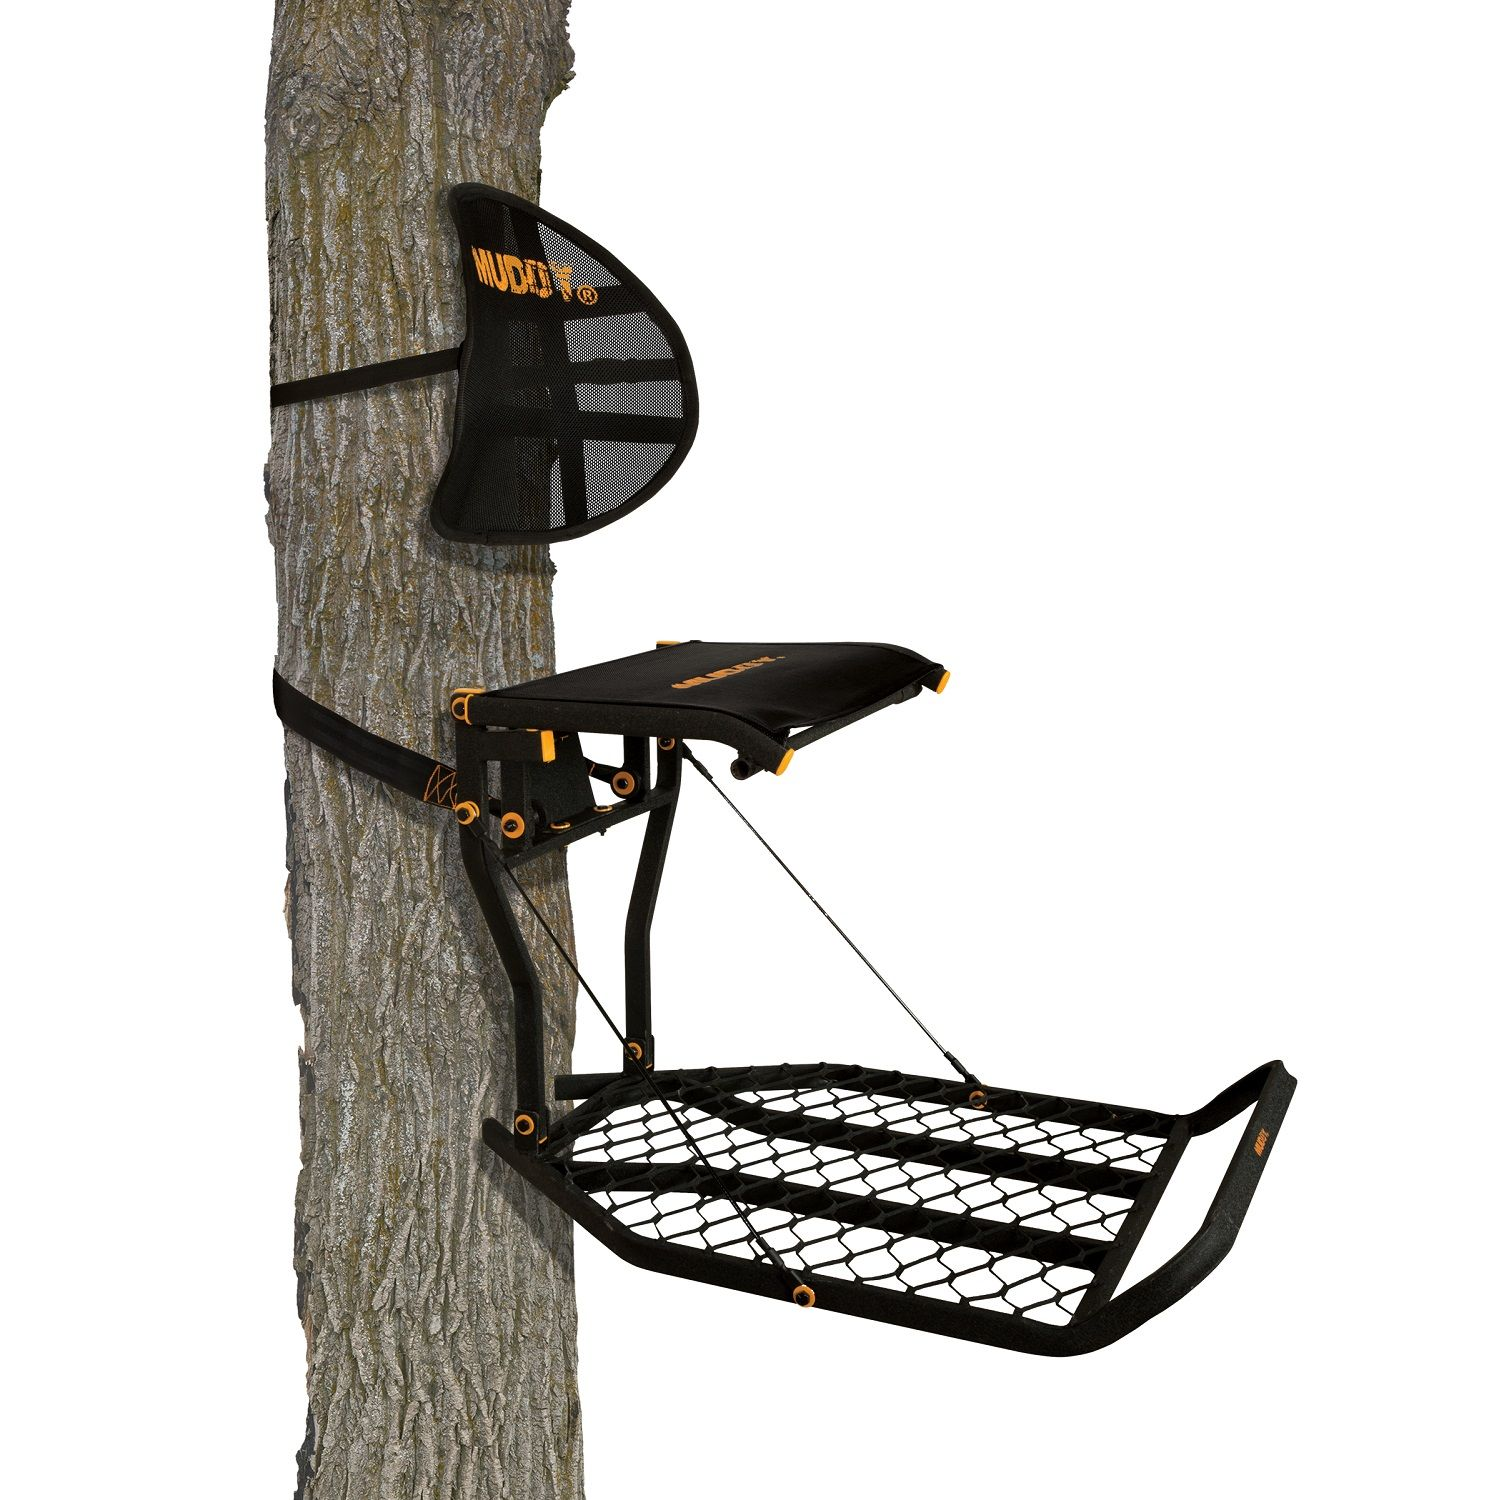 Muddy Prodigy Fixed Position Treestand, Orange Seat